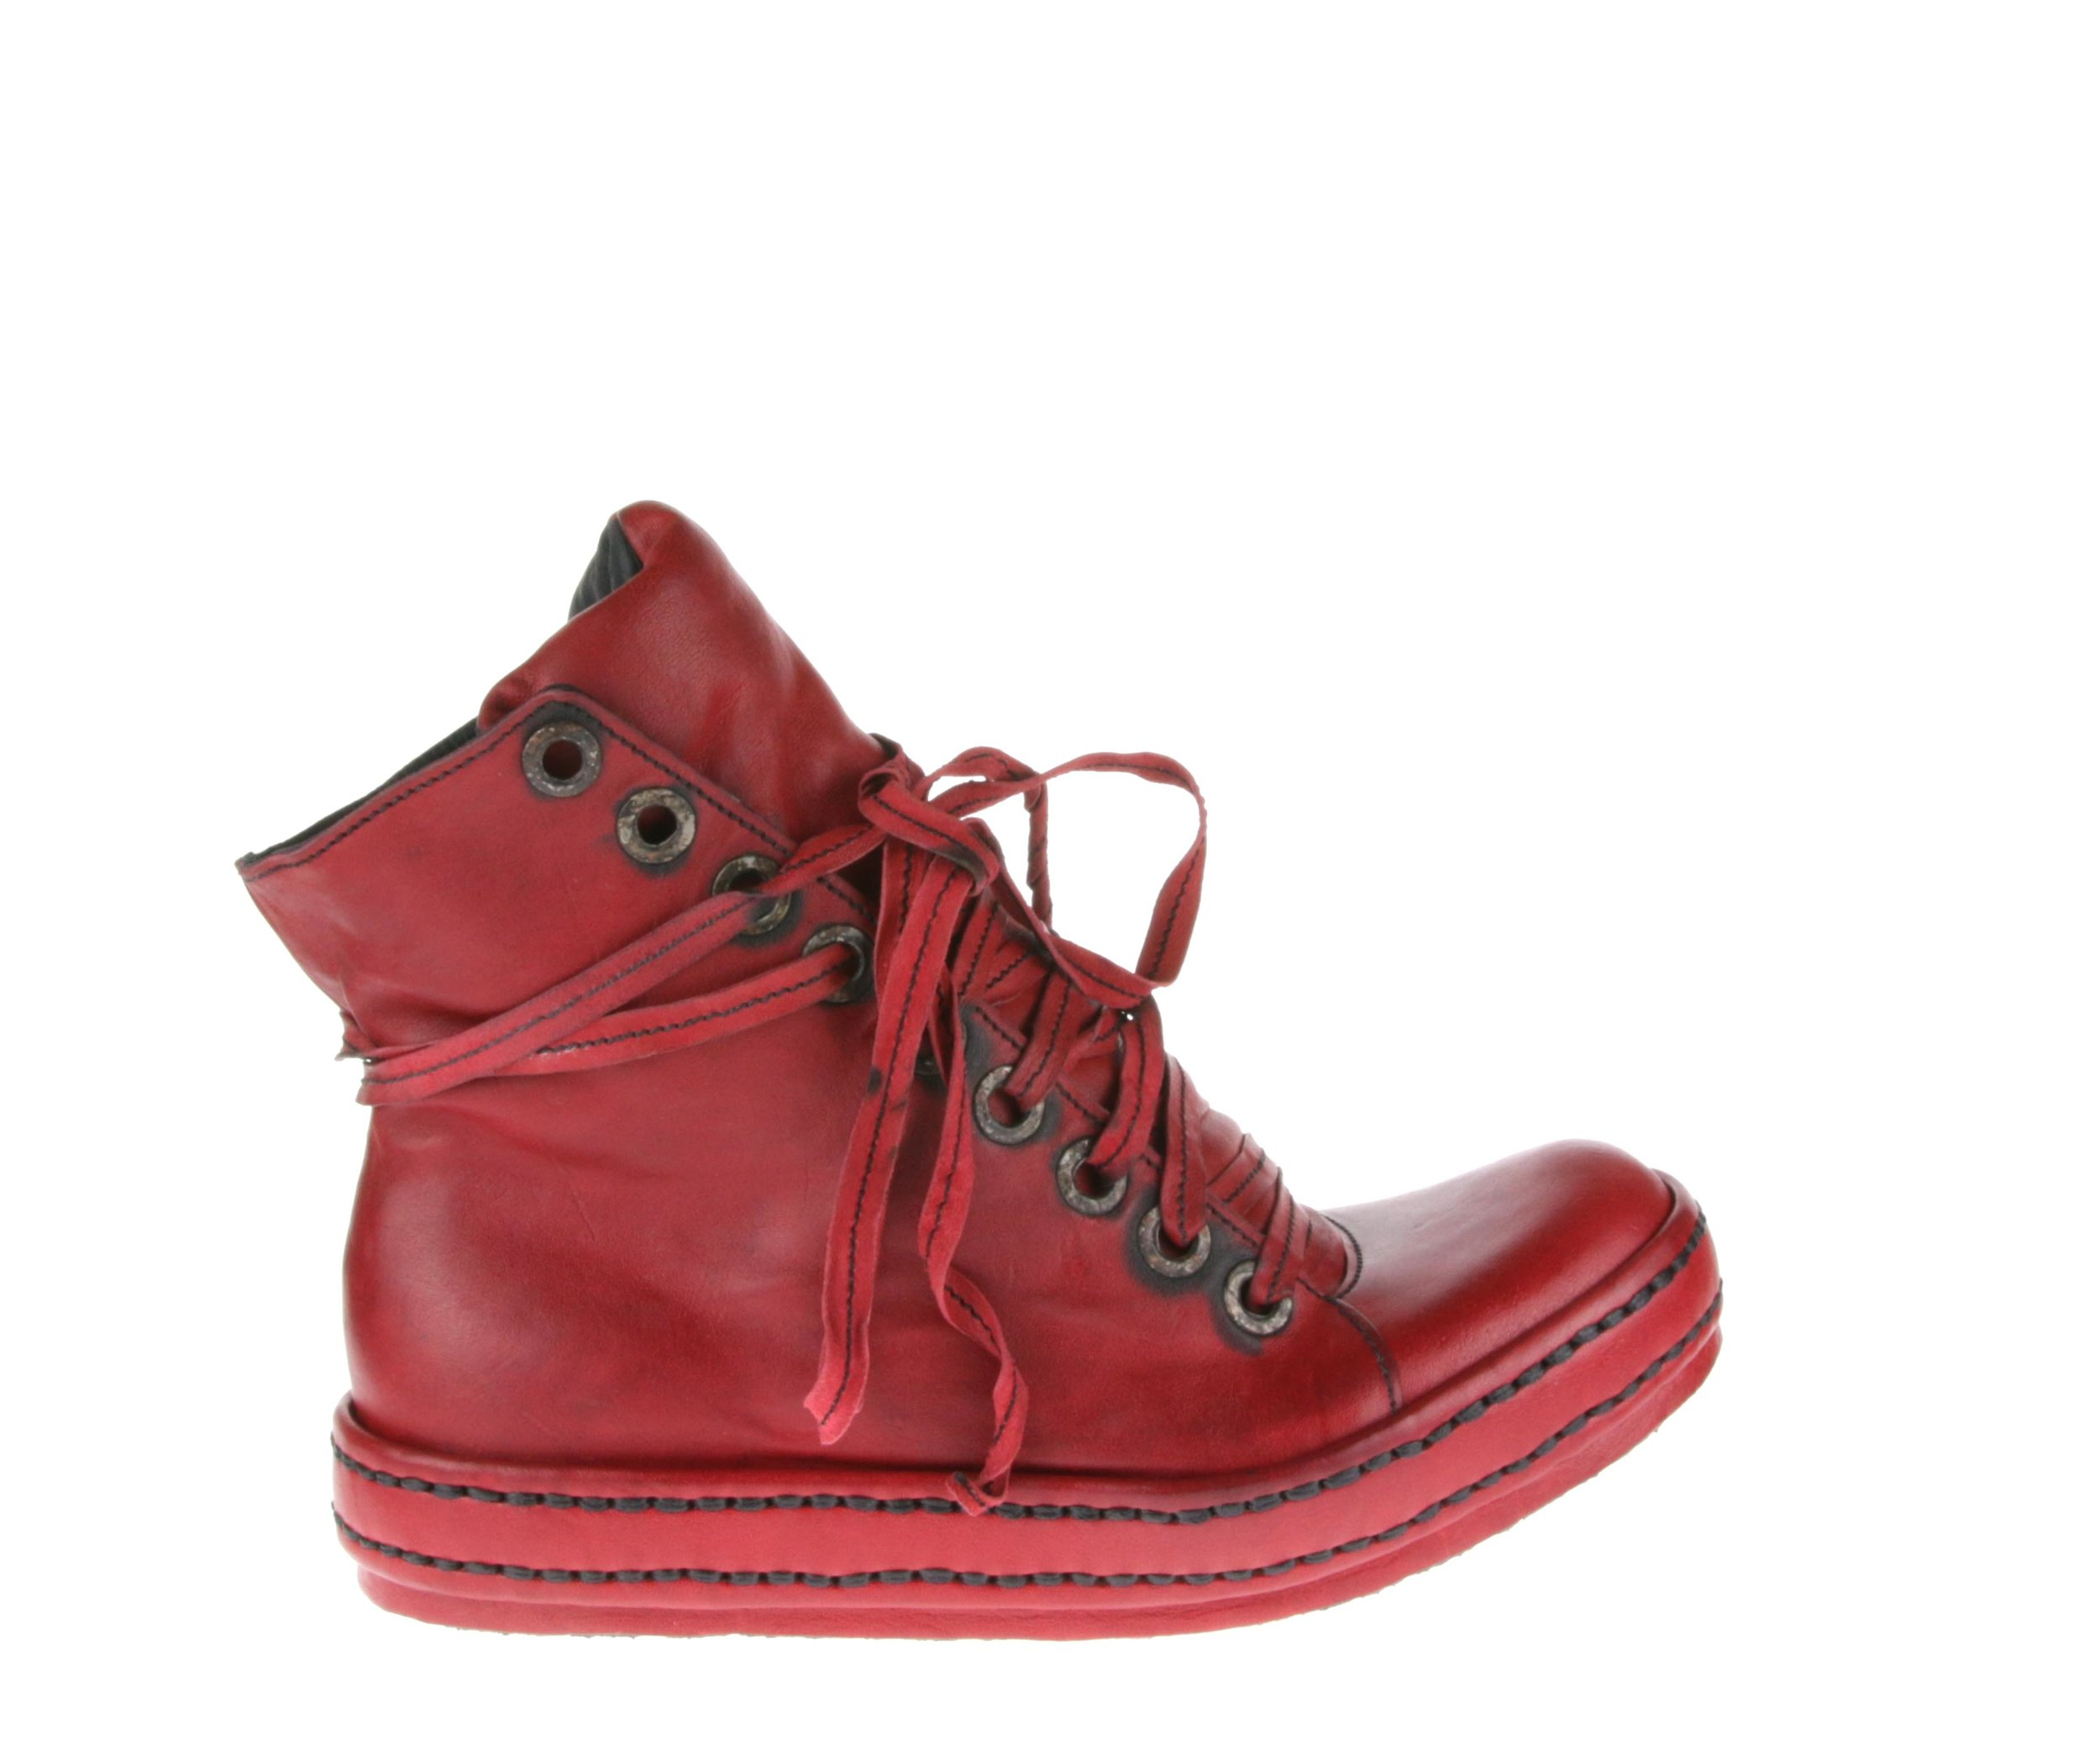 9Hole LBs Red Roo Outsole.jpg